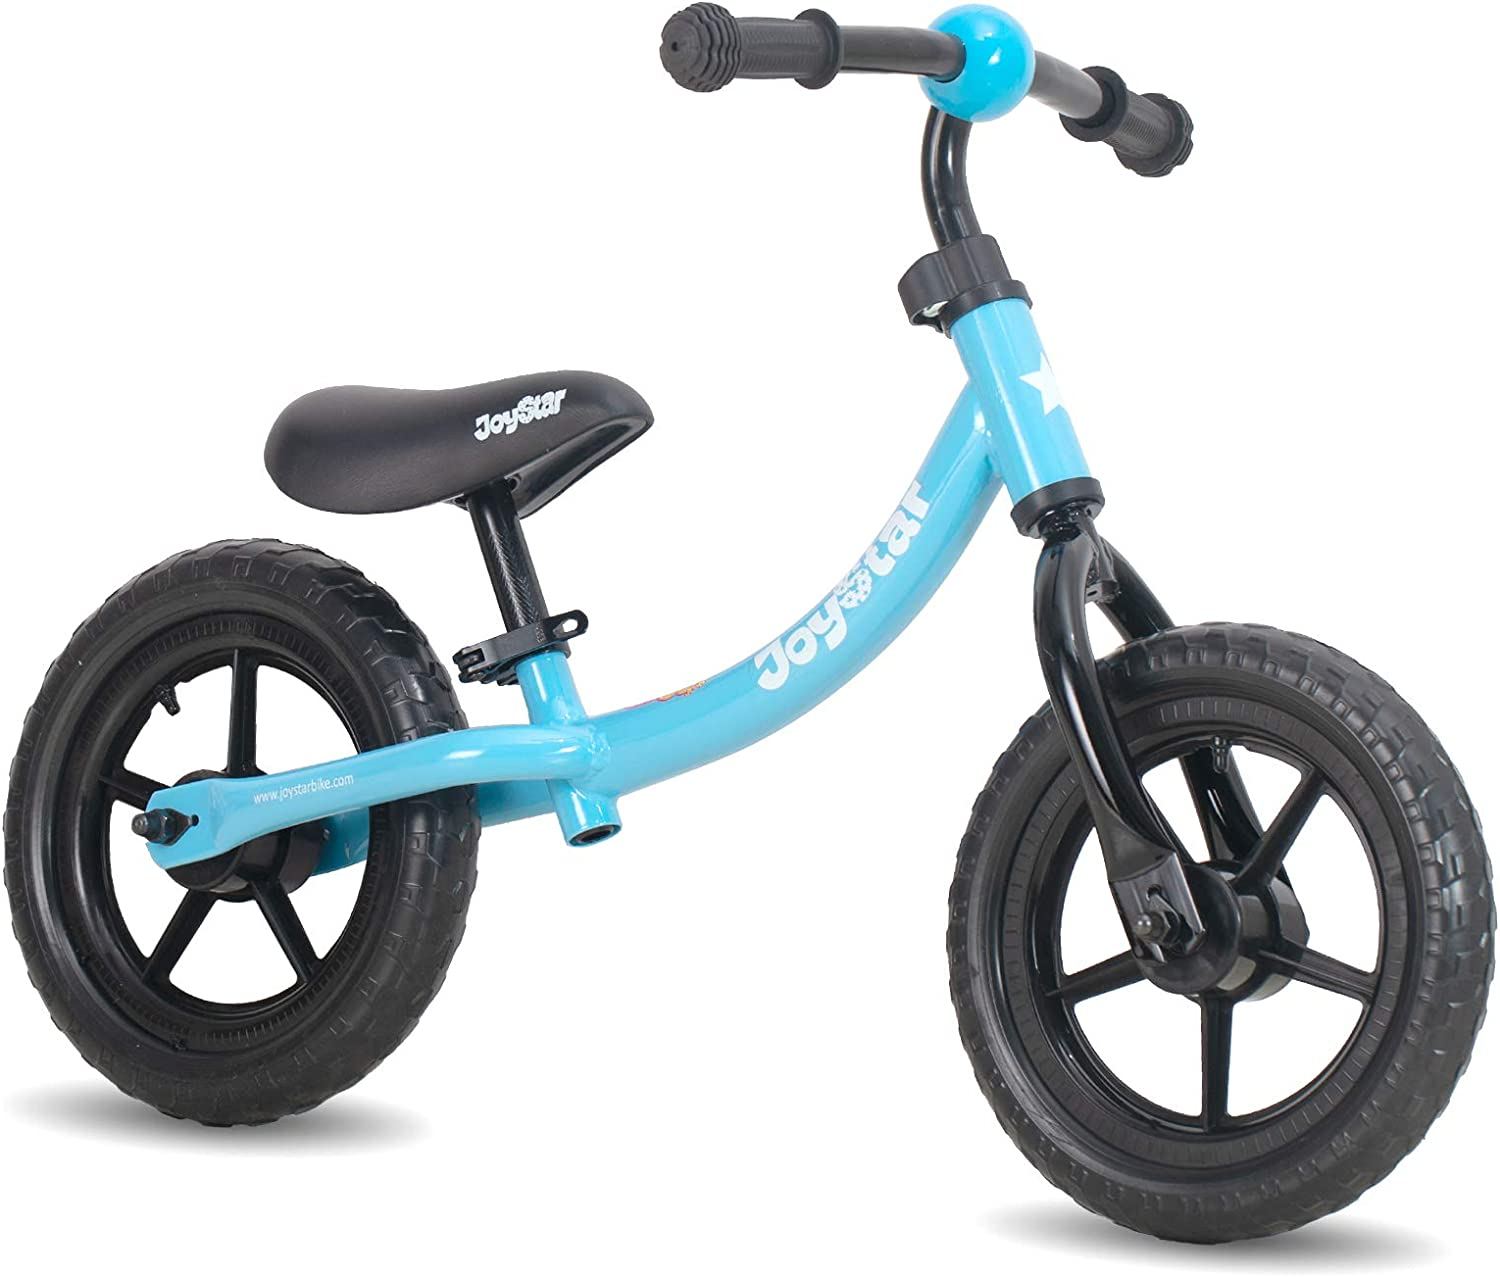 Phoenix Toddler Kids Balance Bike For Girls Boys Ages 18 Months To 5 Years